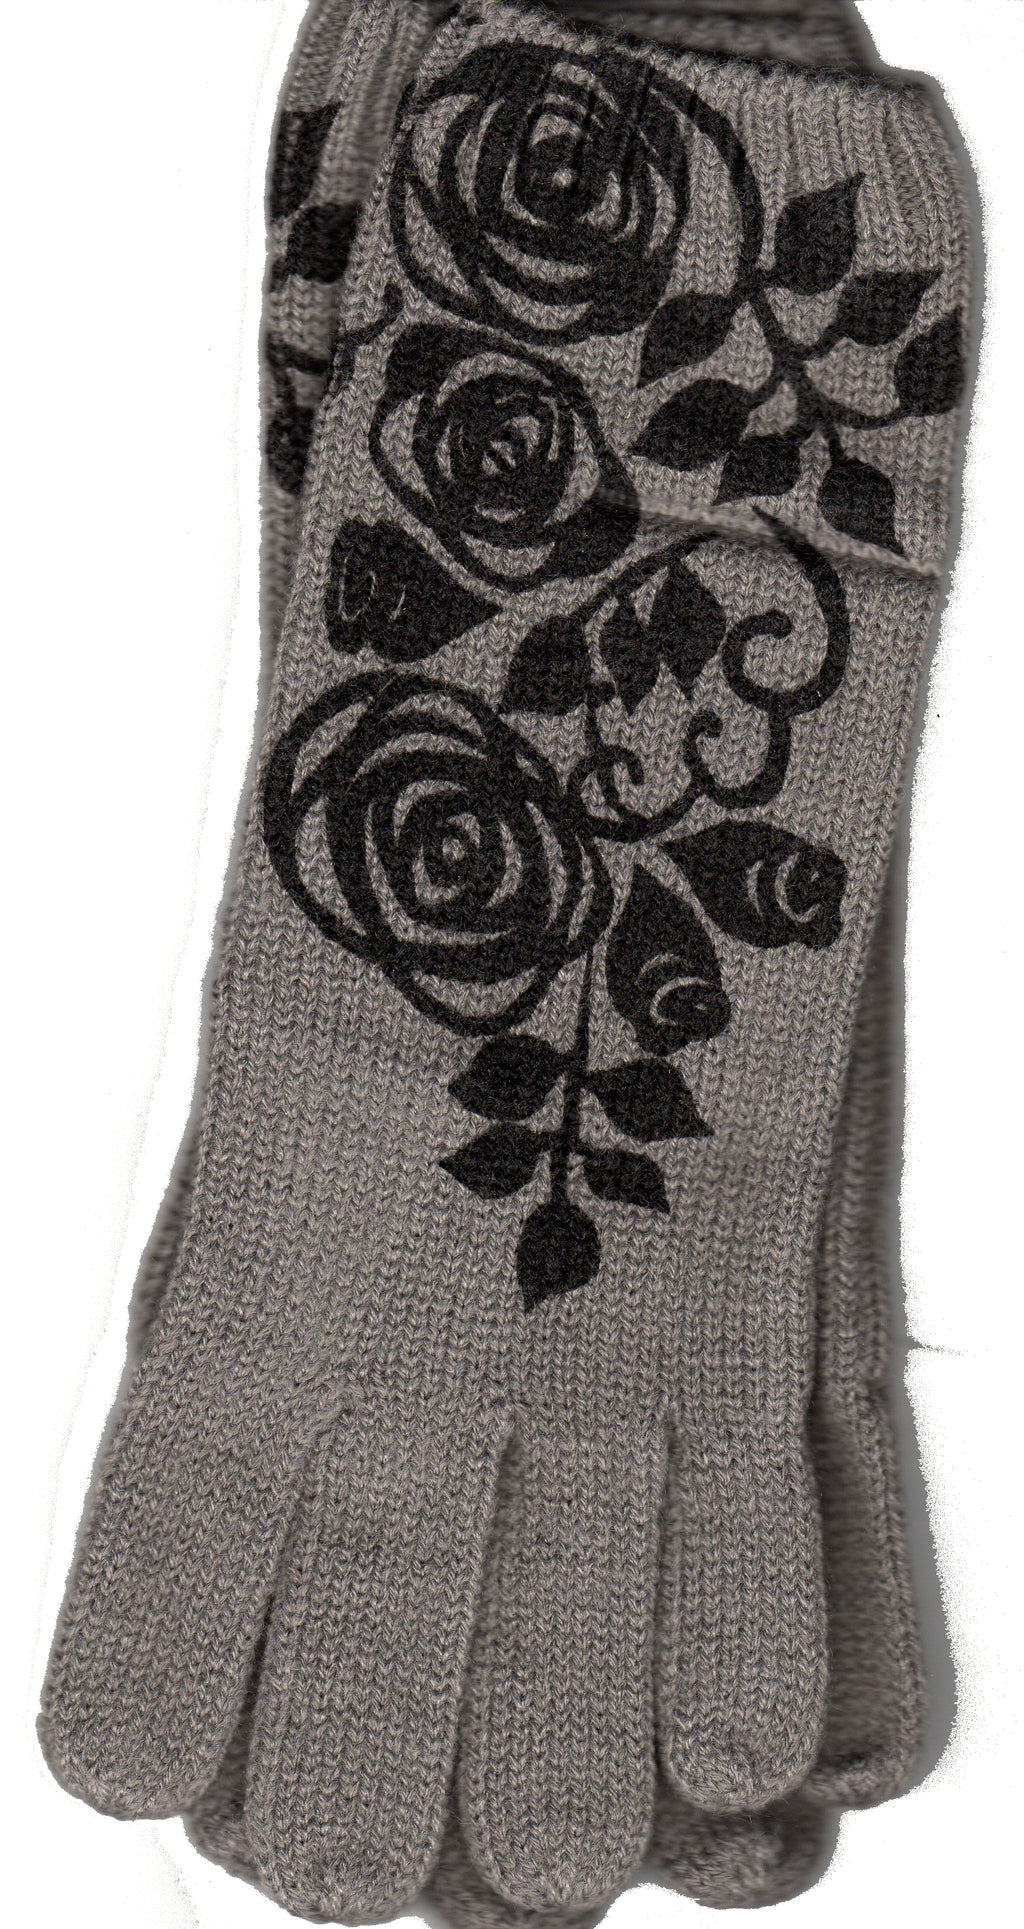 Grey Rosebud Gloves from Zazou has a Black stencil print set of Roses and Rosebuds on the top of the Glove.